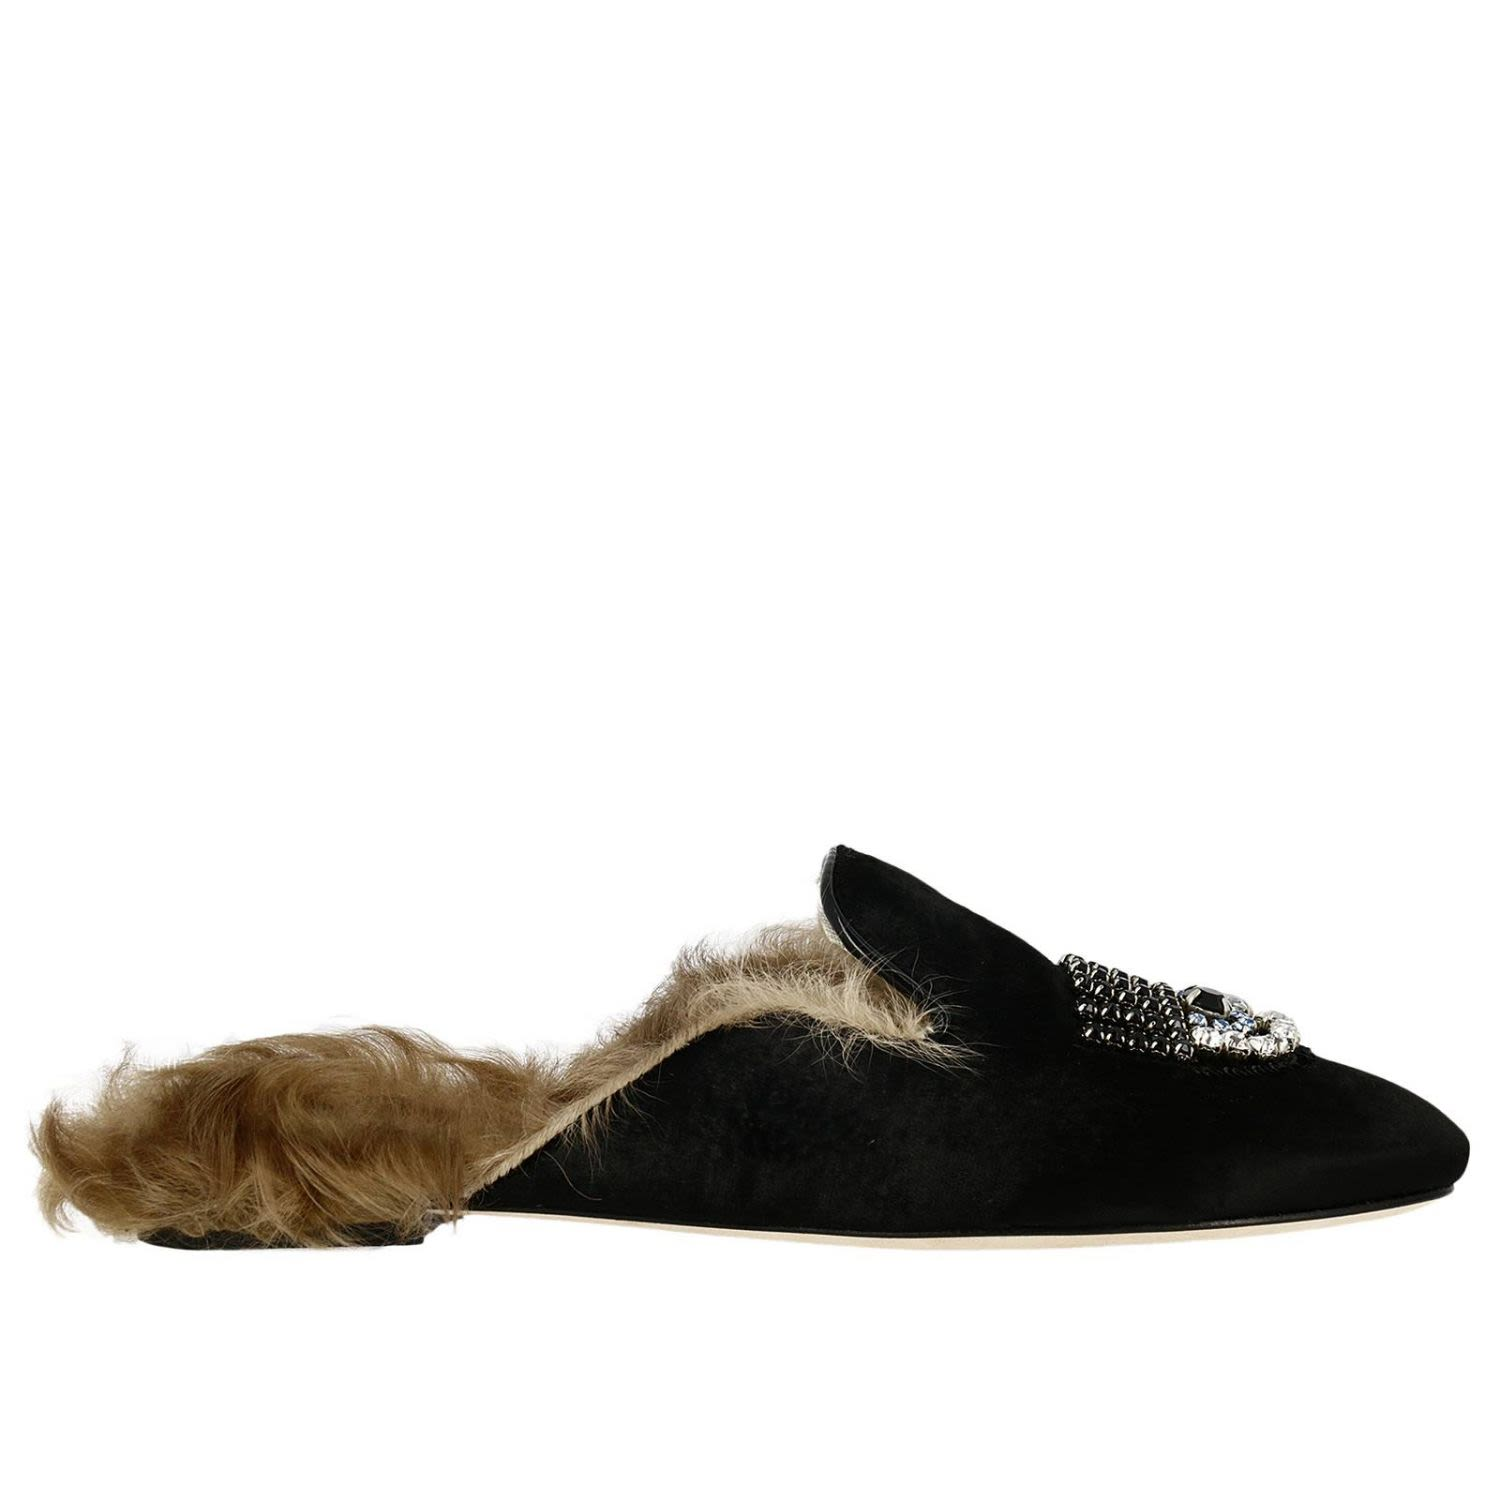 chiara ferragni ballet flats shoes women chiara ferragni black women 39 s flat shoes italist. Black Bedroom Furniture Sets. Home Design Ideas